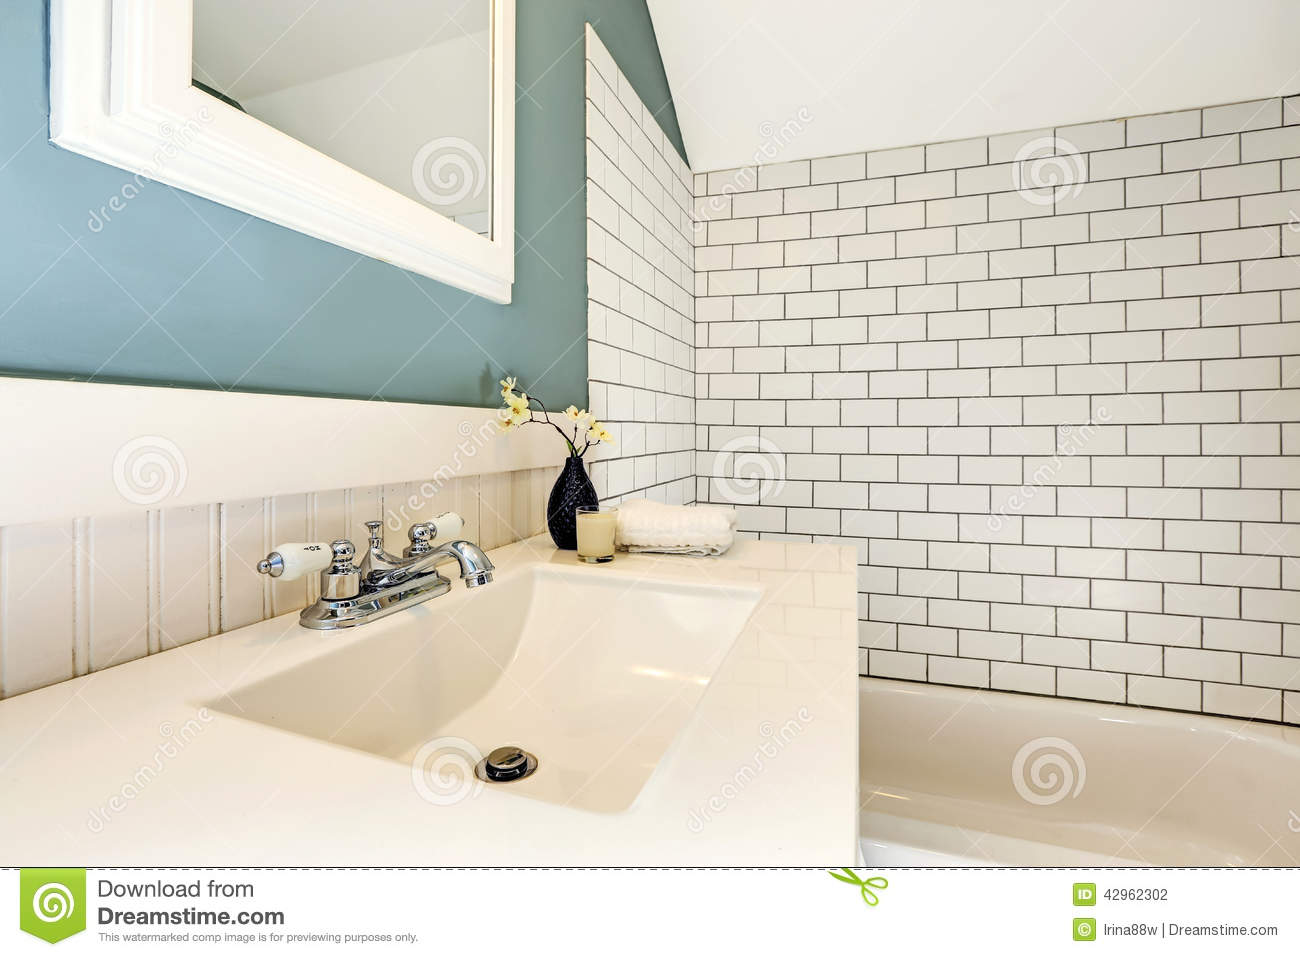 Tile Bathroom Trim tile wall trim in bathroom stock photo - image: 42962354